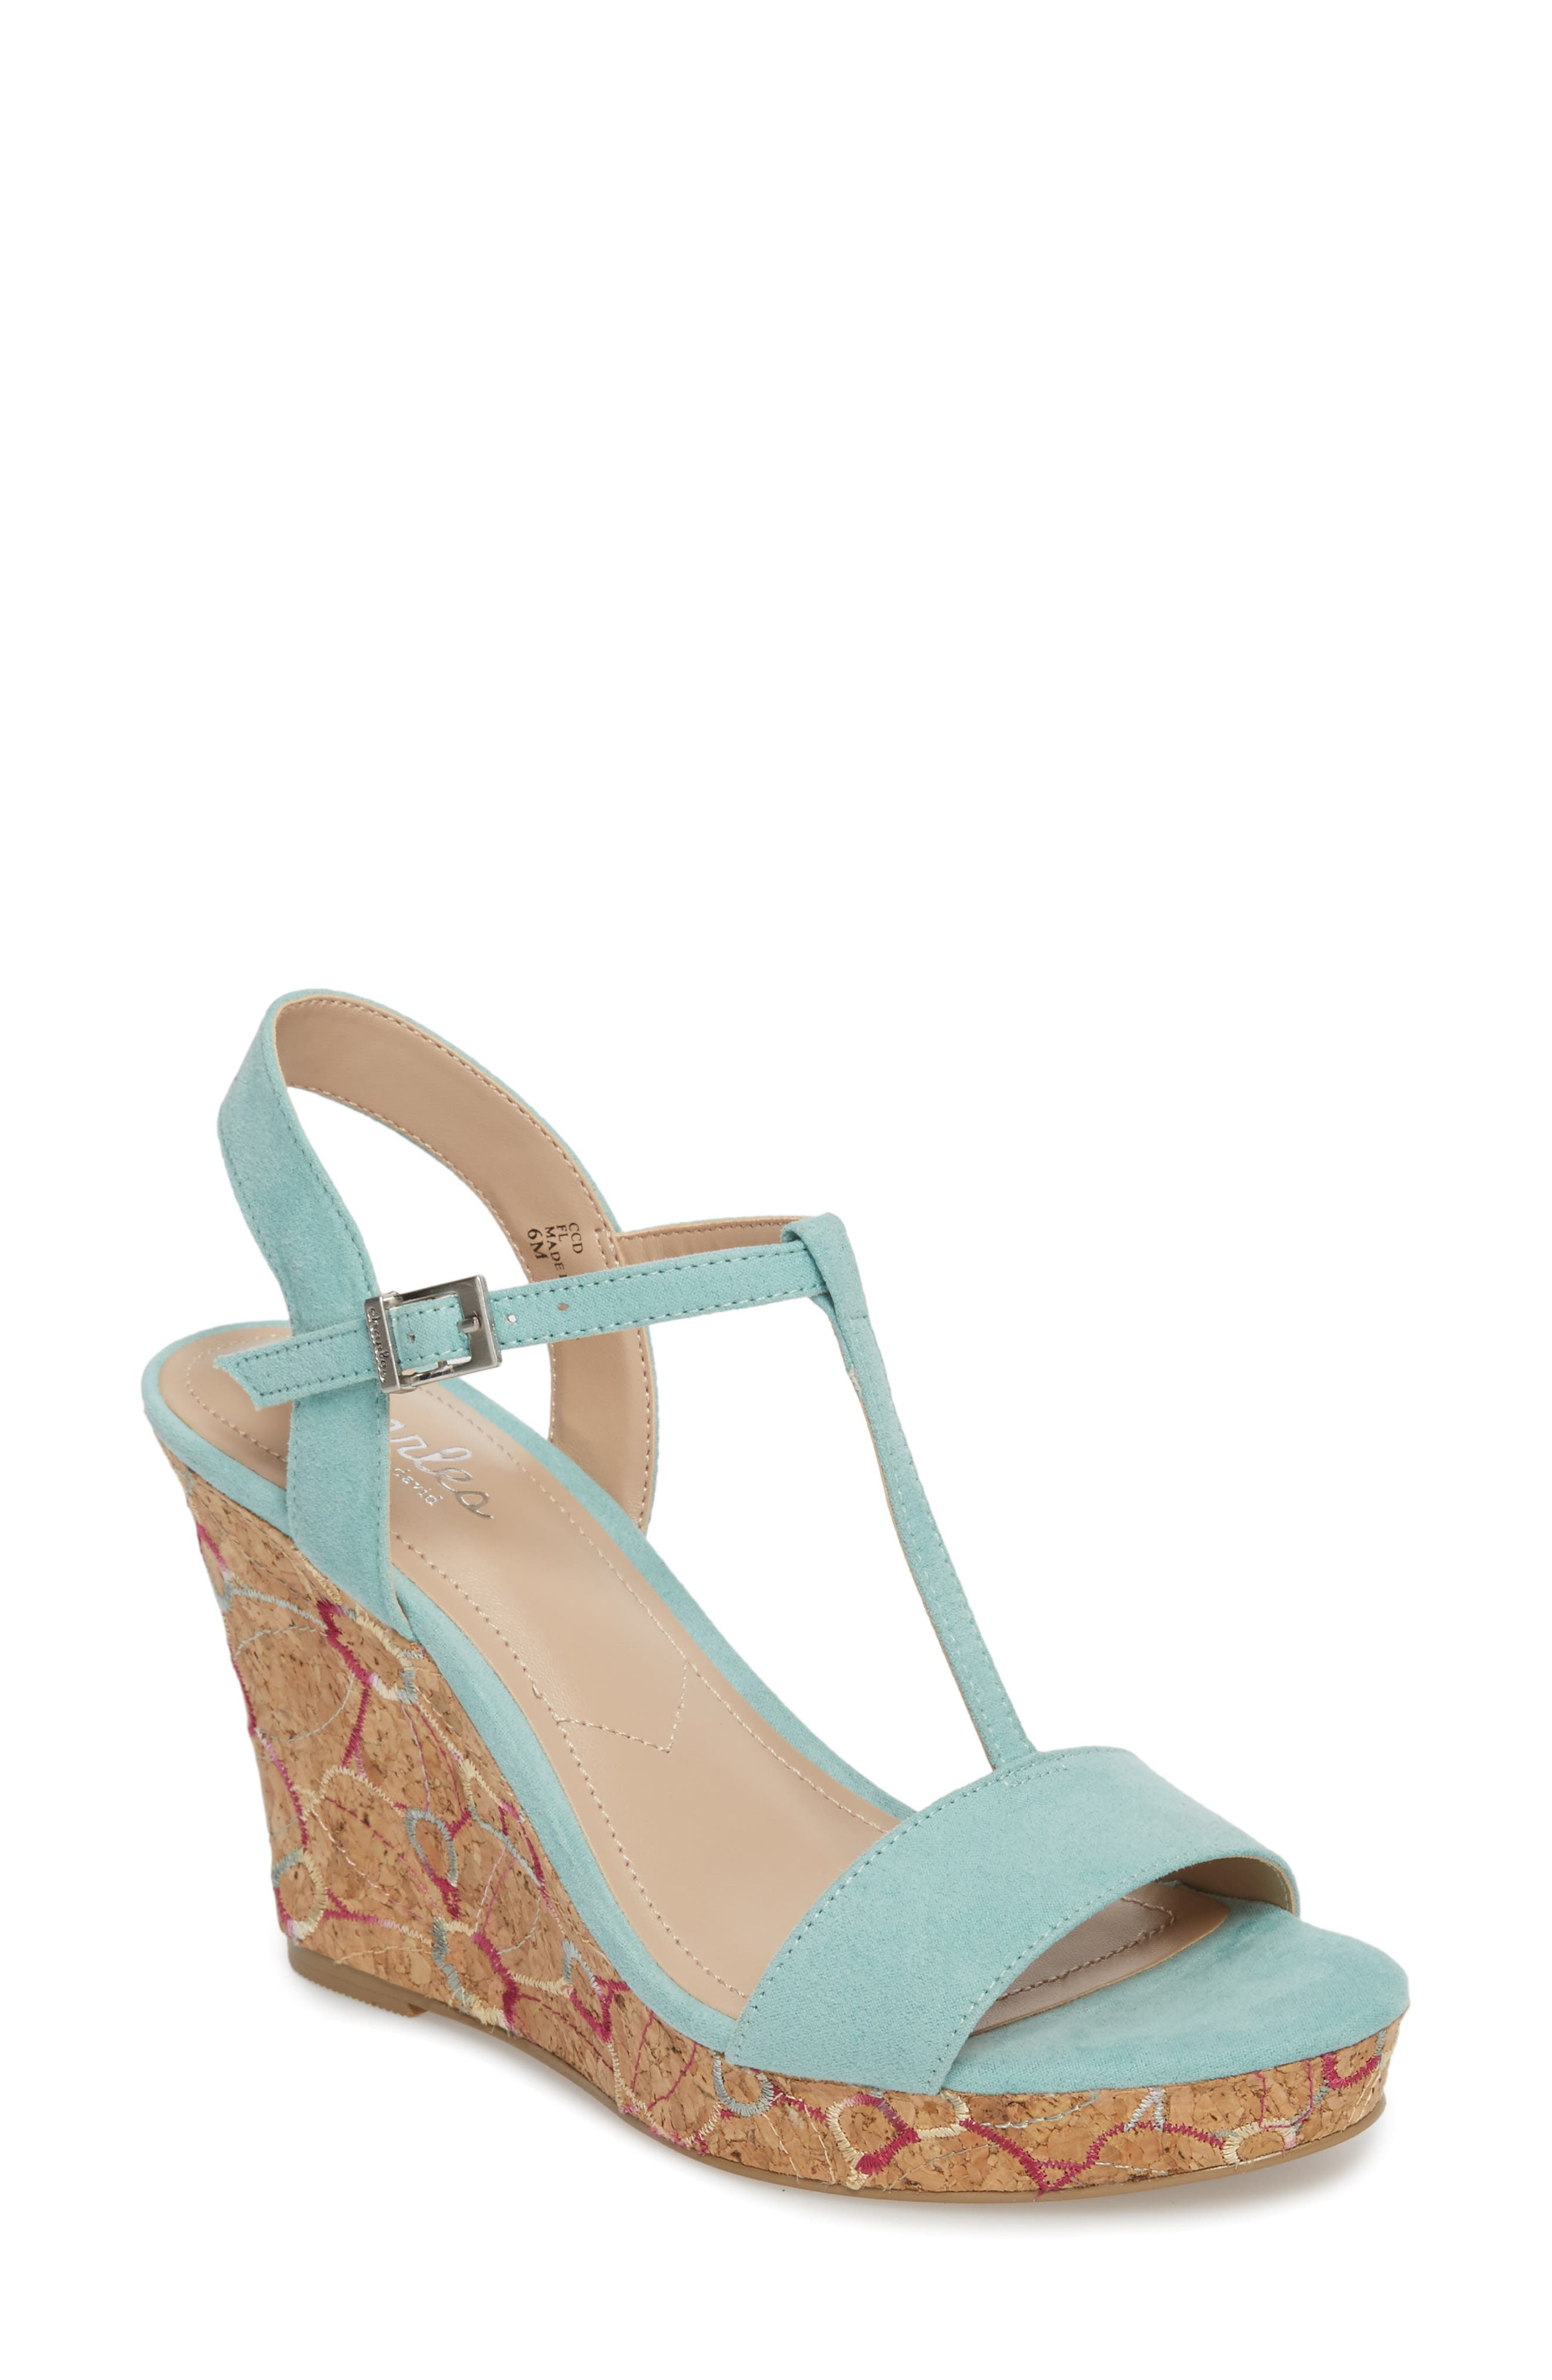 Laney Embroidered Wedge Sandal,                             Main thumbnail 1, color,                             Mint Green Suede